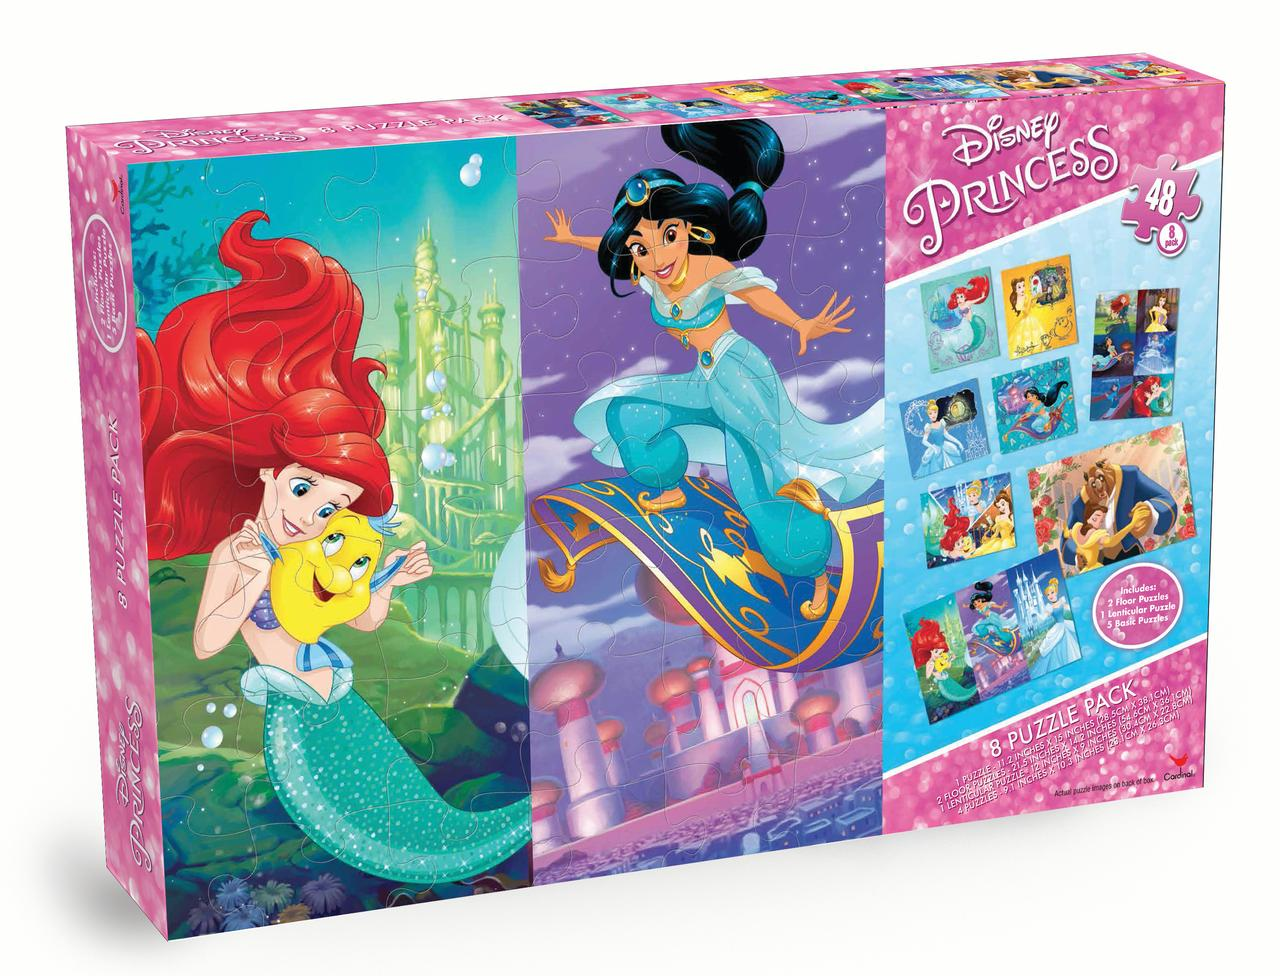 Disney Princess 8-Pack Puzzle Box by Spin Master Ltd